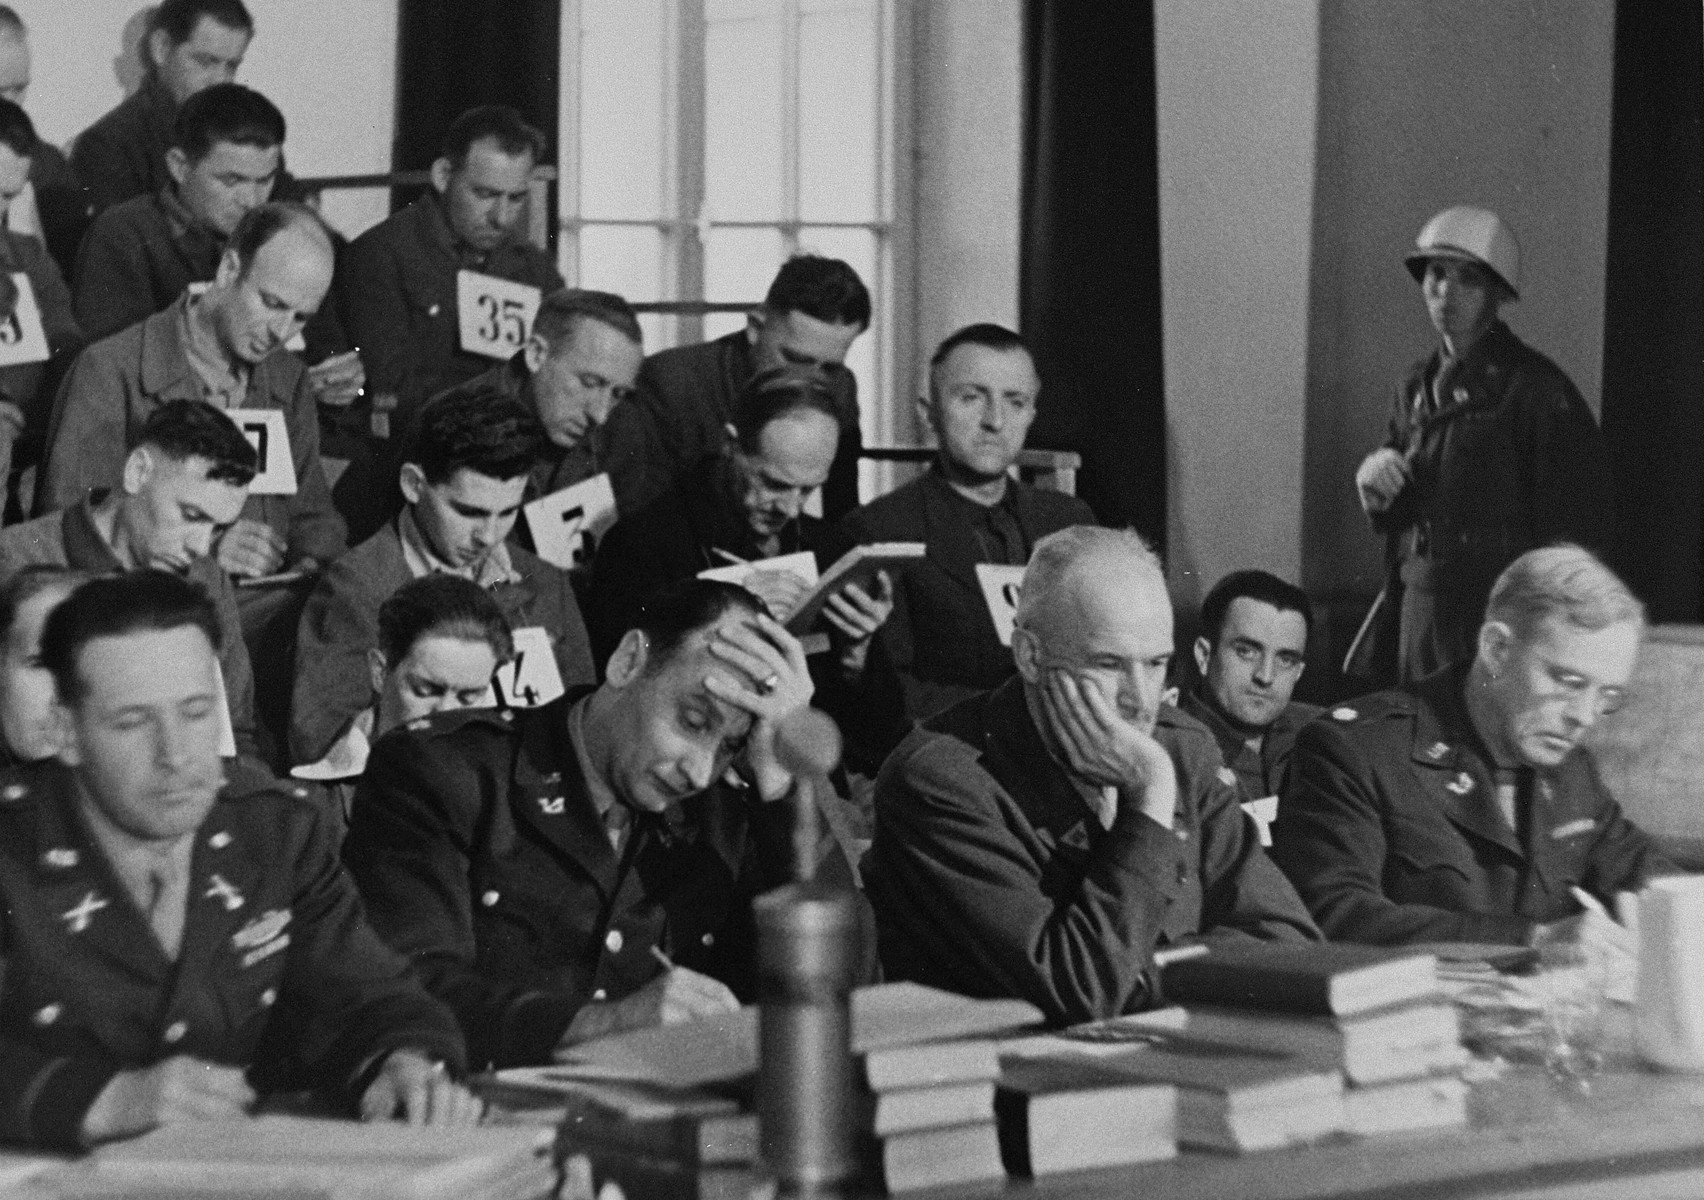 The defendants in the trial of 61 former camp personnel and prisoners from Mauthausen sit behind a group of American military lawyers, who have been assigned to defend them.